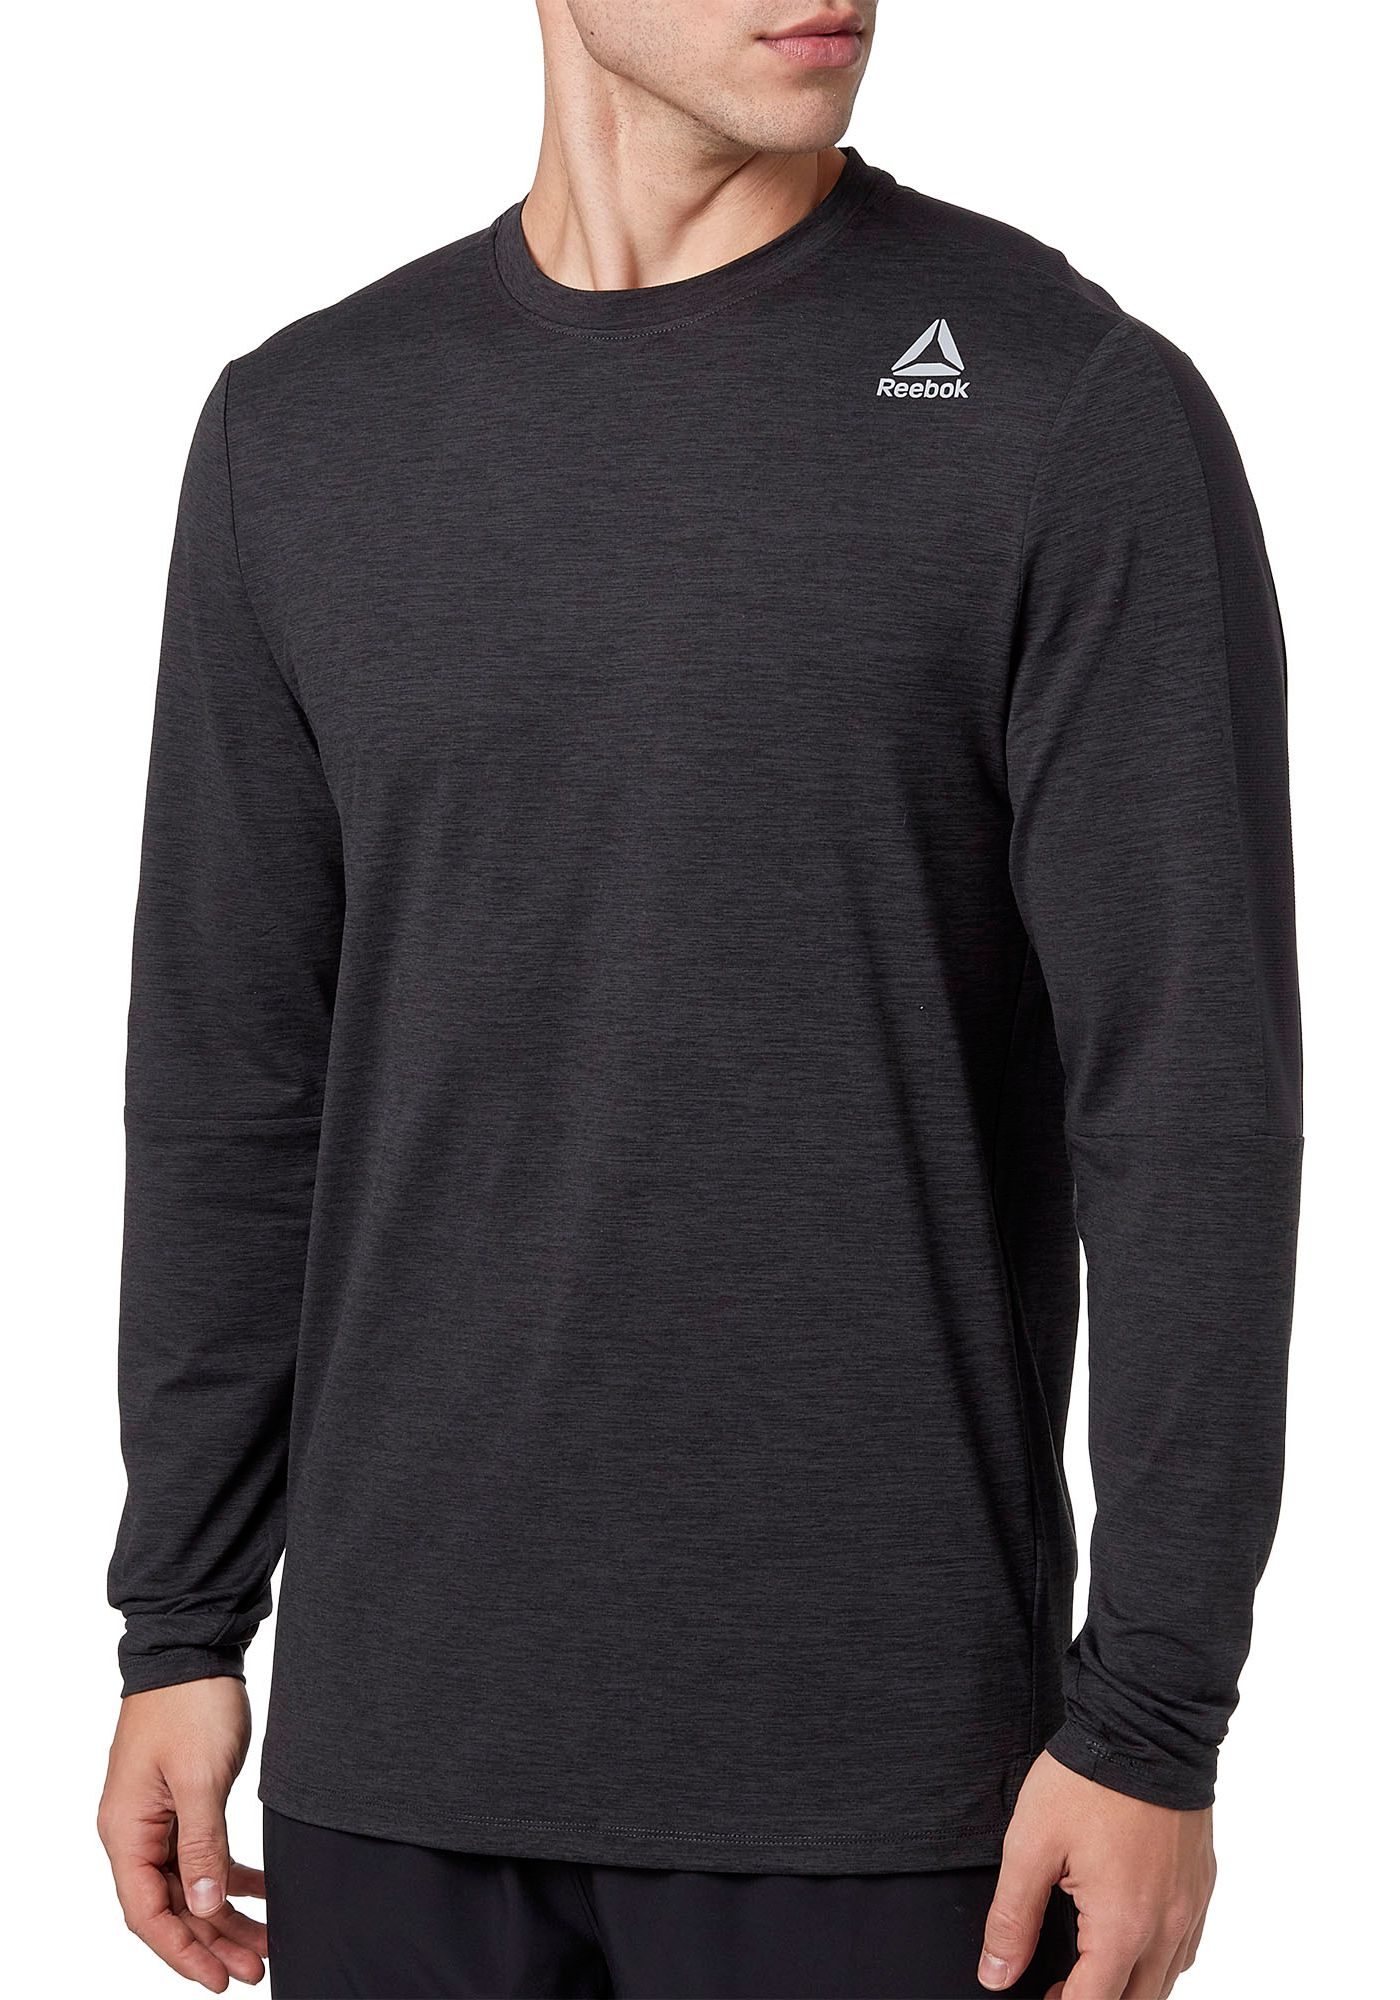 Reebok Men's 24/7 Crewneck Long Sleeve Shirt